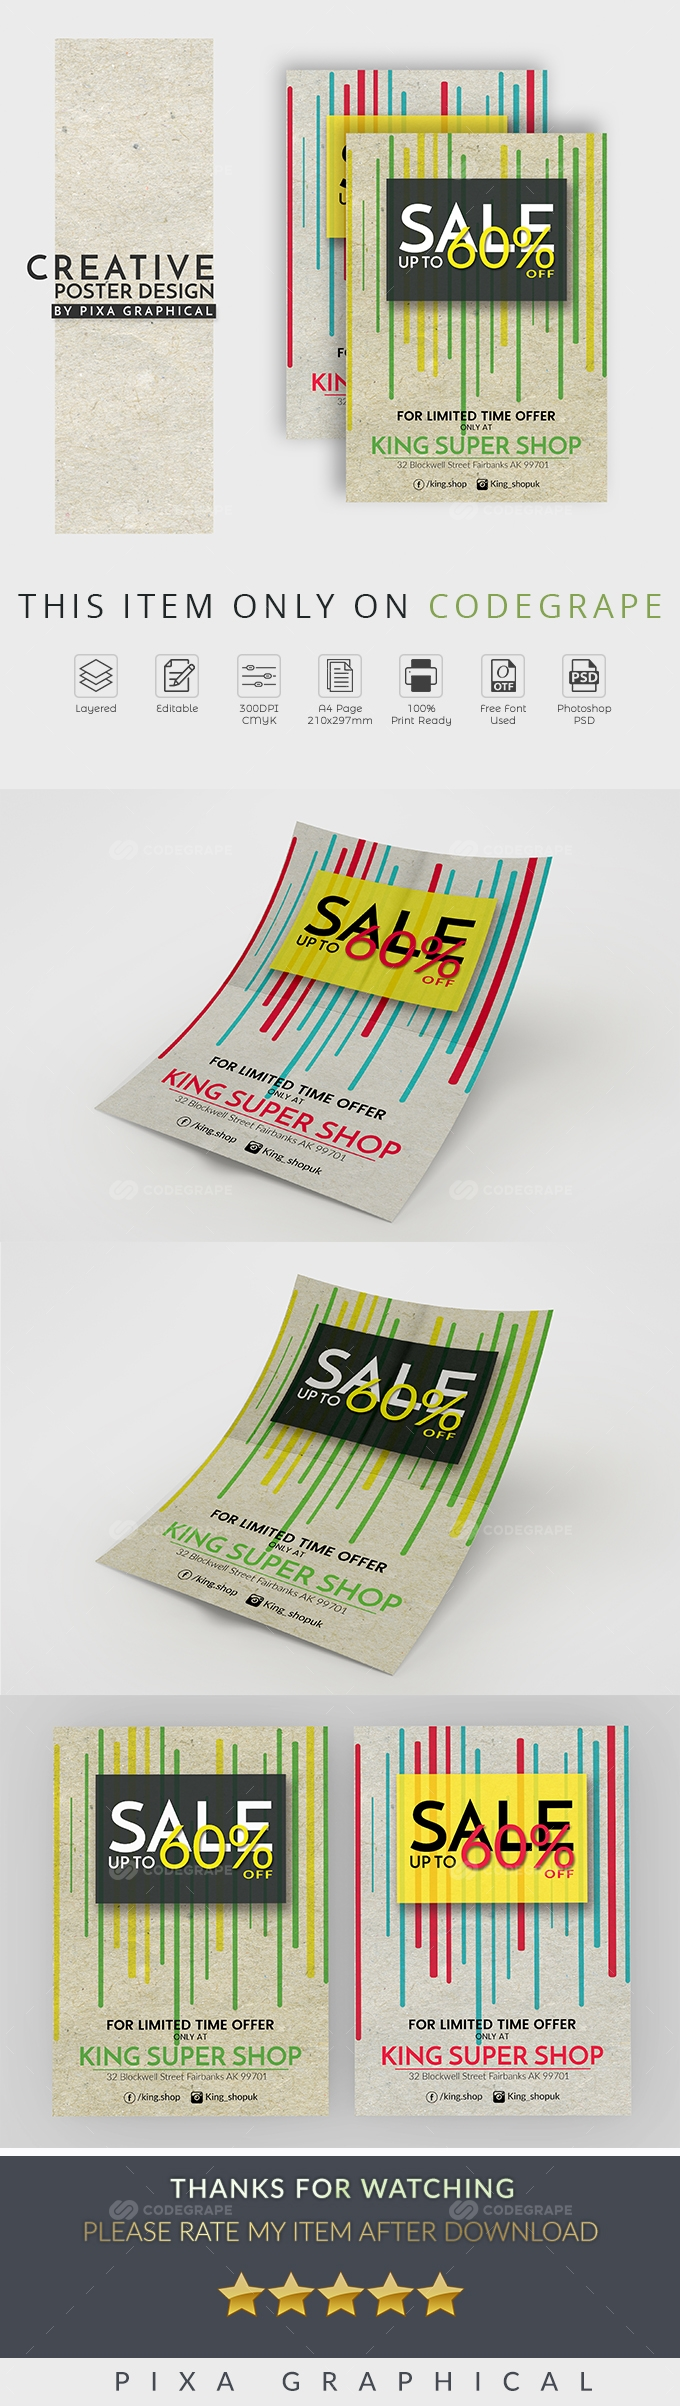 Creative Poster Design For Shop Sale